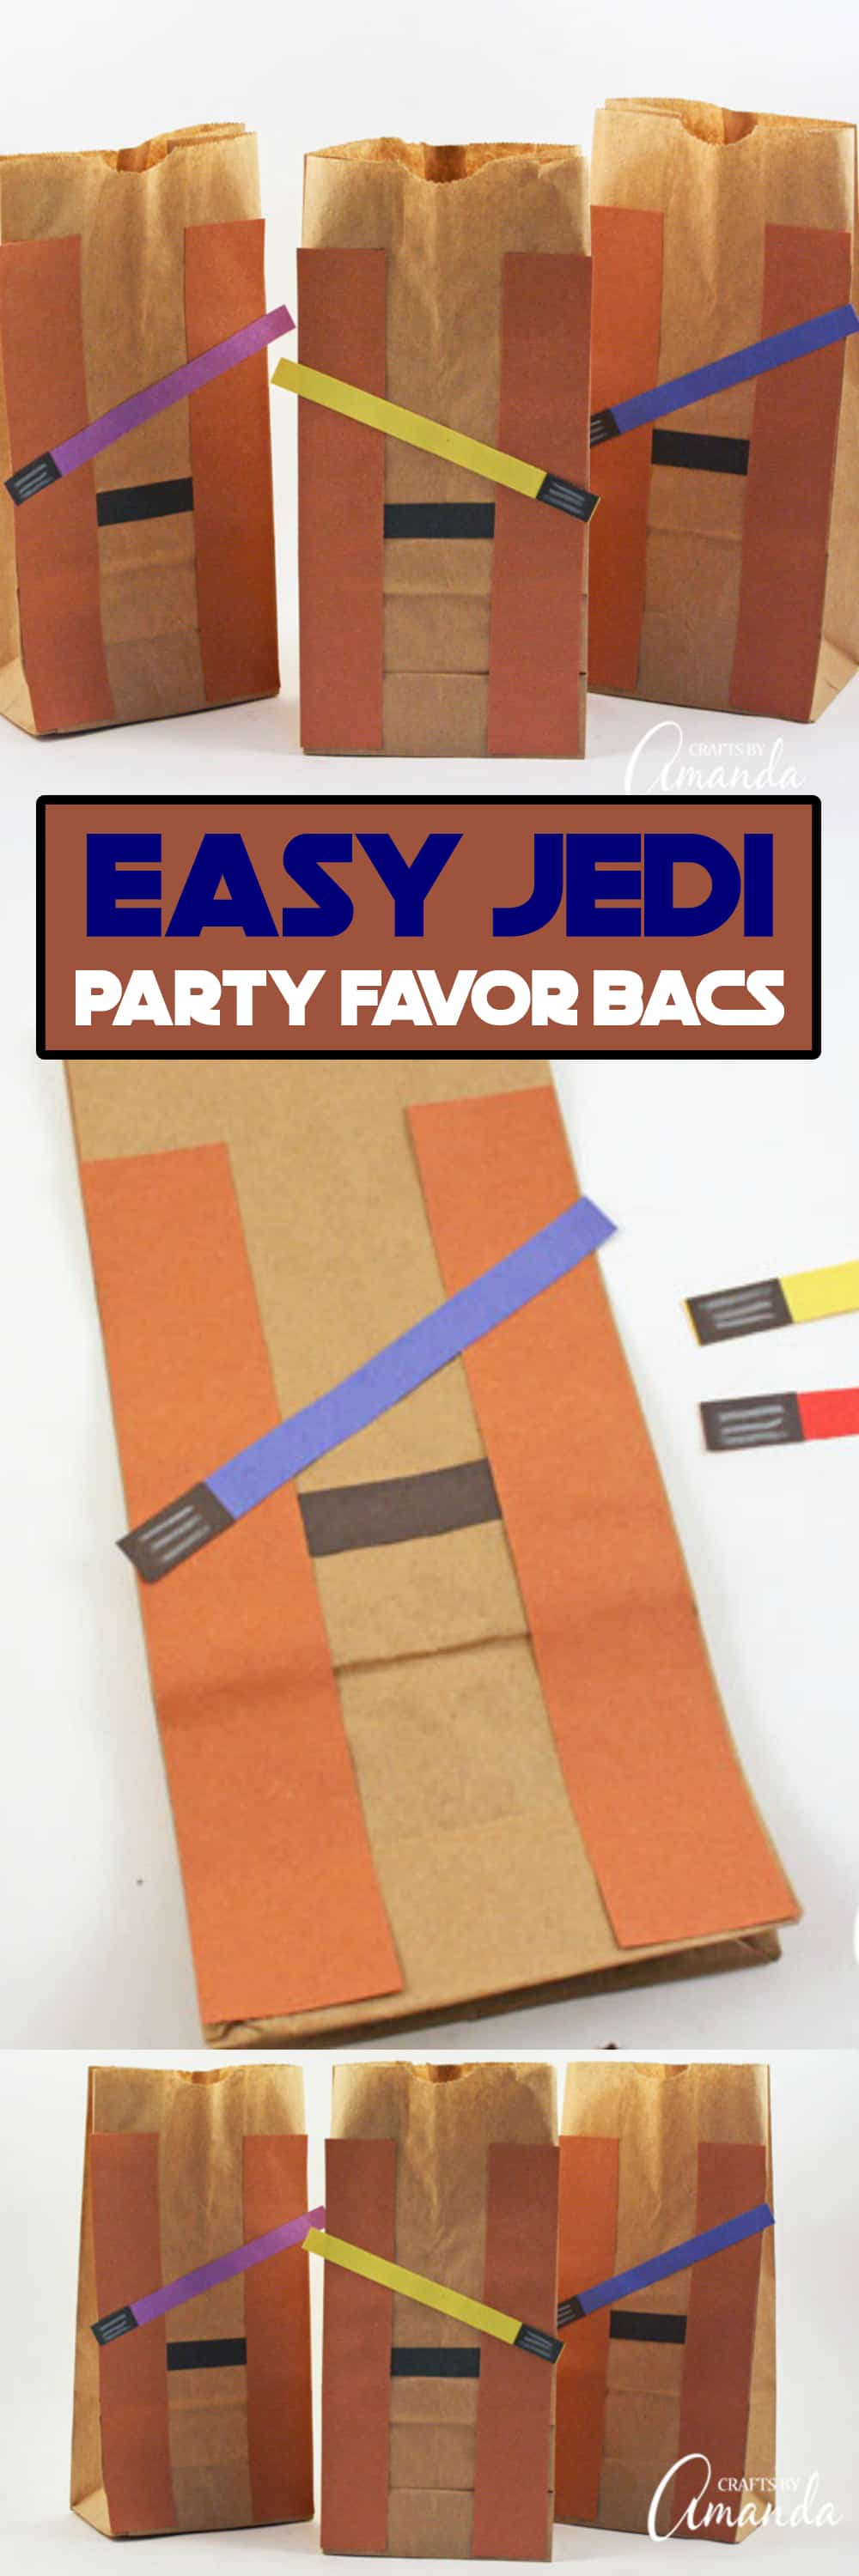 Star Wars the Last Jedi is breaking records and it's guaranteed there will be plenty of Star Wars birthday parties this year. Make these Jedi party favor bags for your guests!